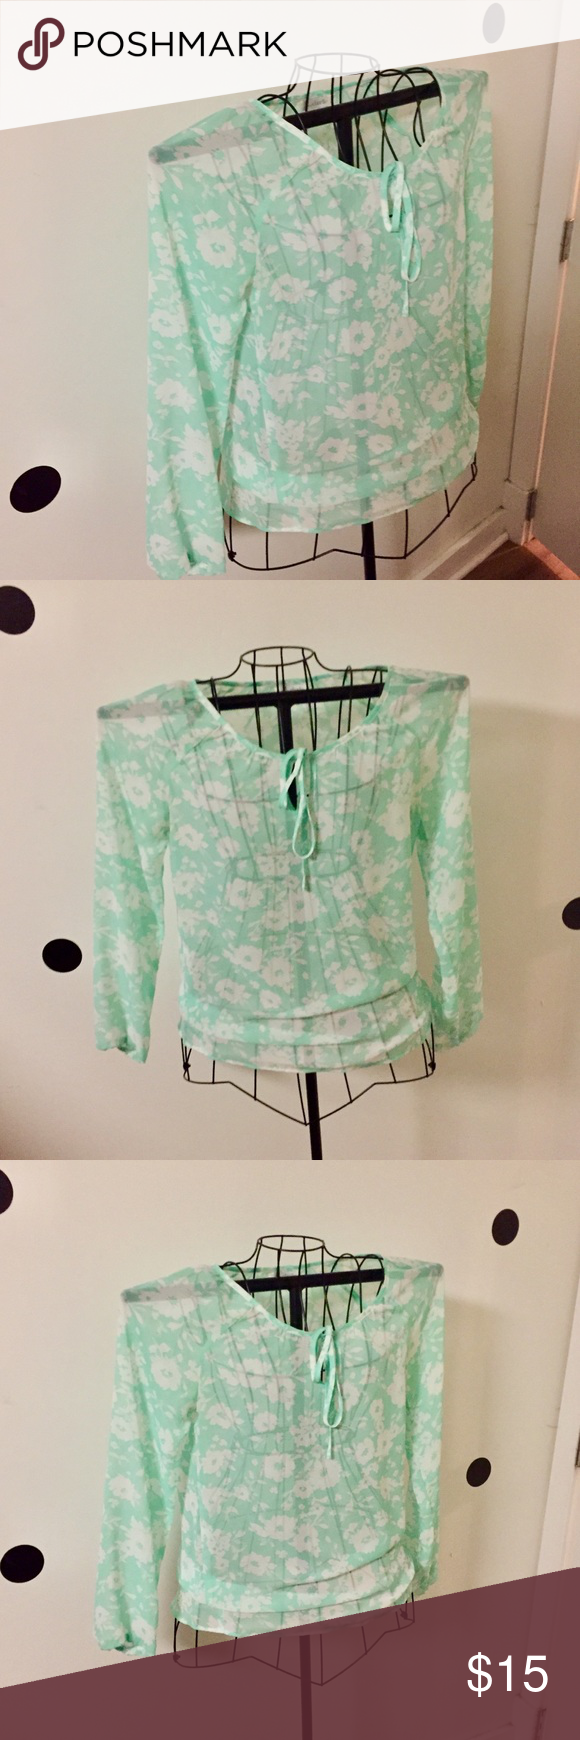 3410af79c34 Charming Charlie Mint Front Tie Blouse This blouse has a tie in the front  (shown